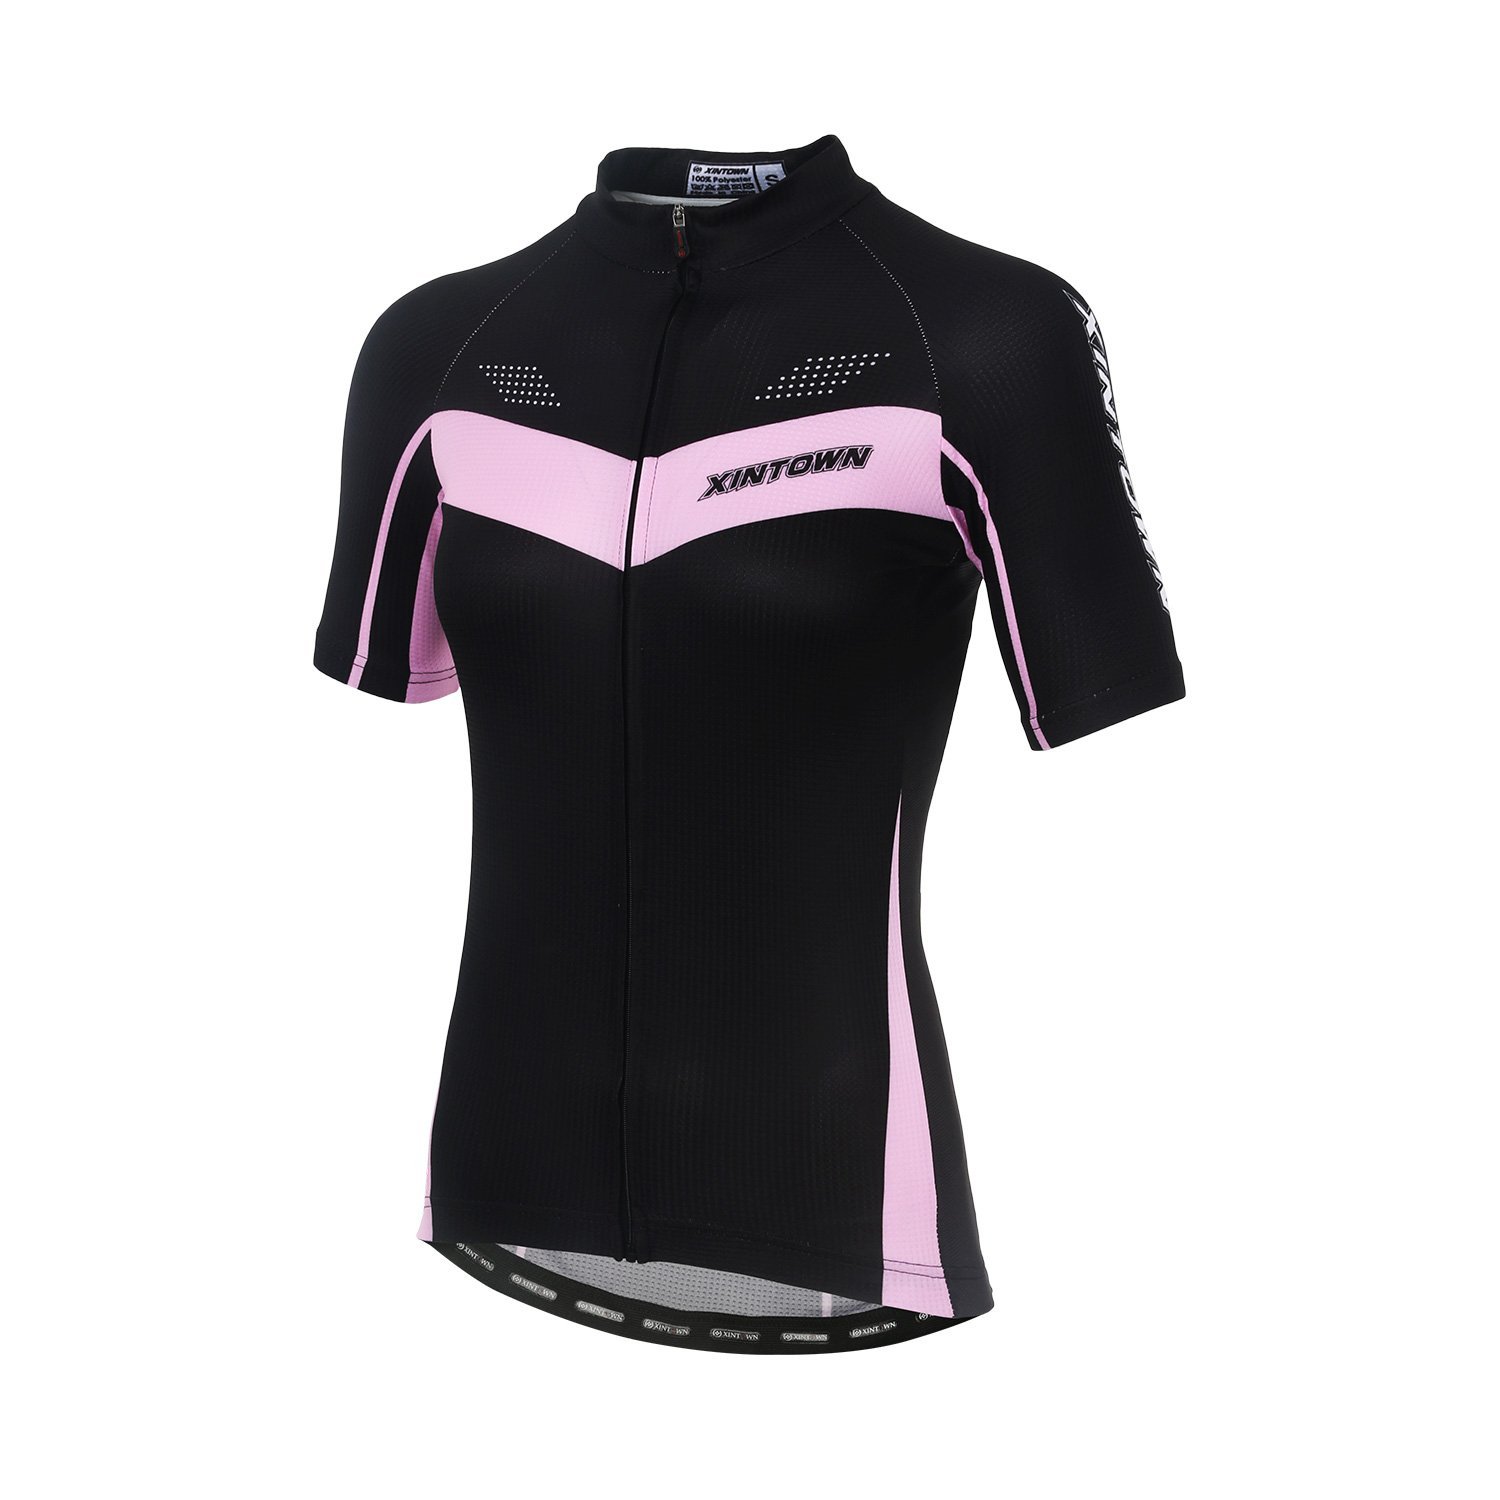 DuShow Women Cycling Jersey Short Sleeve Cycling Shirt Bicycle Bike Top Black 2(S) by DuShow